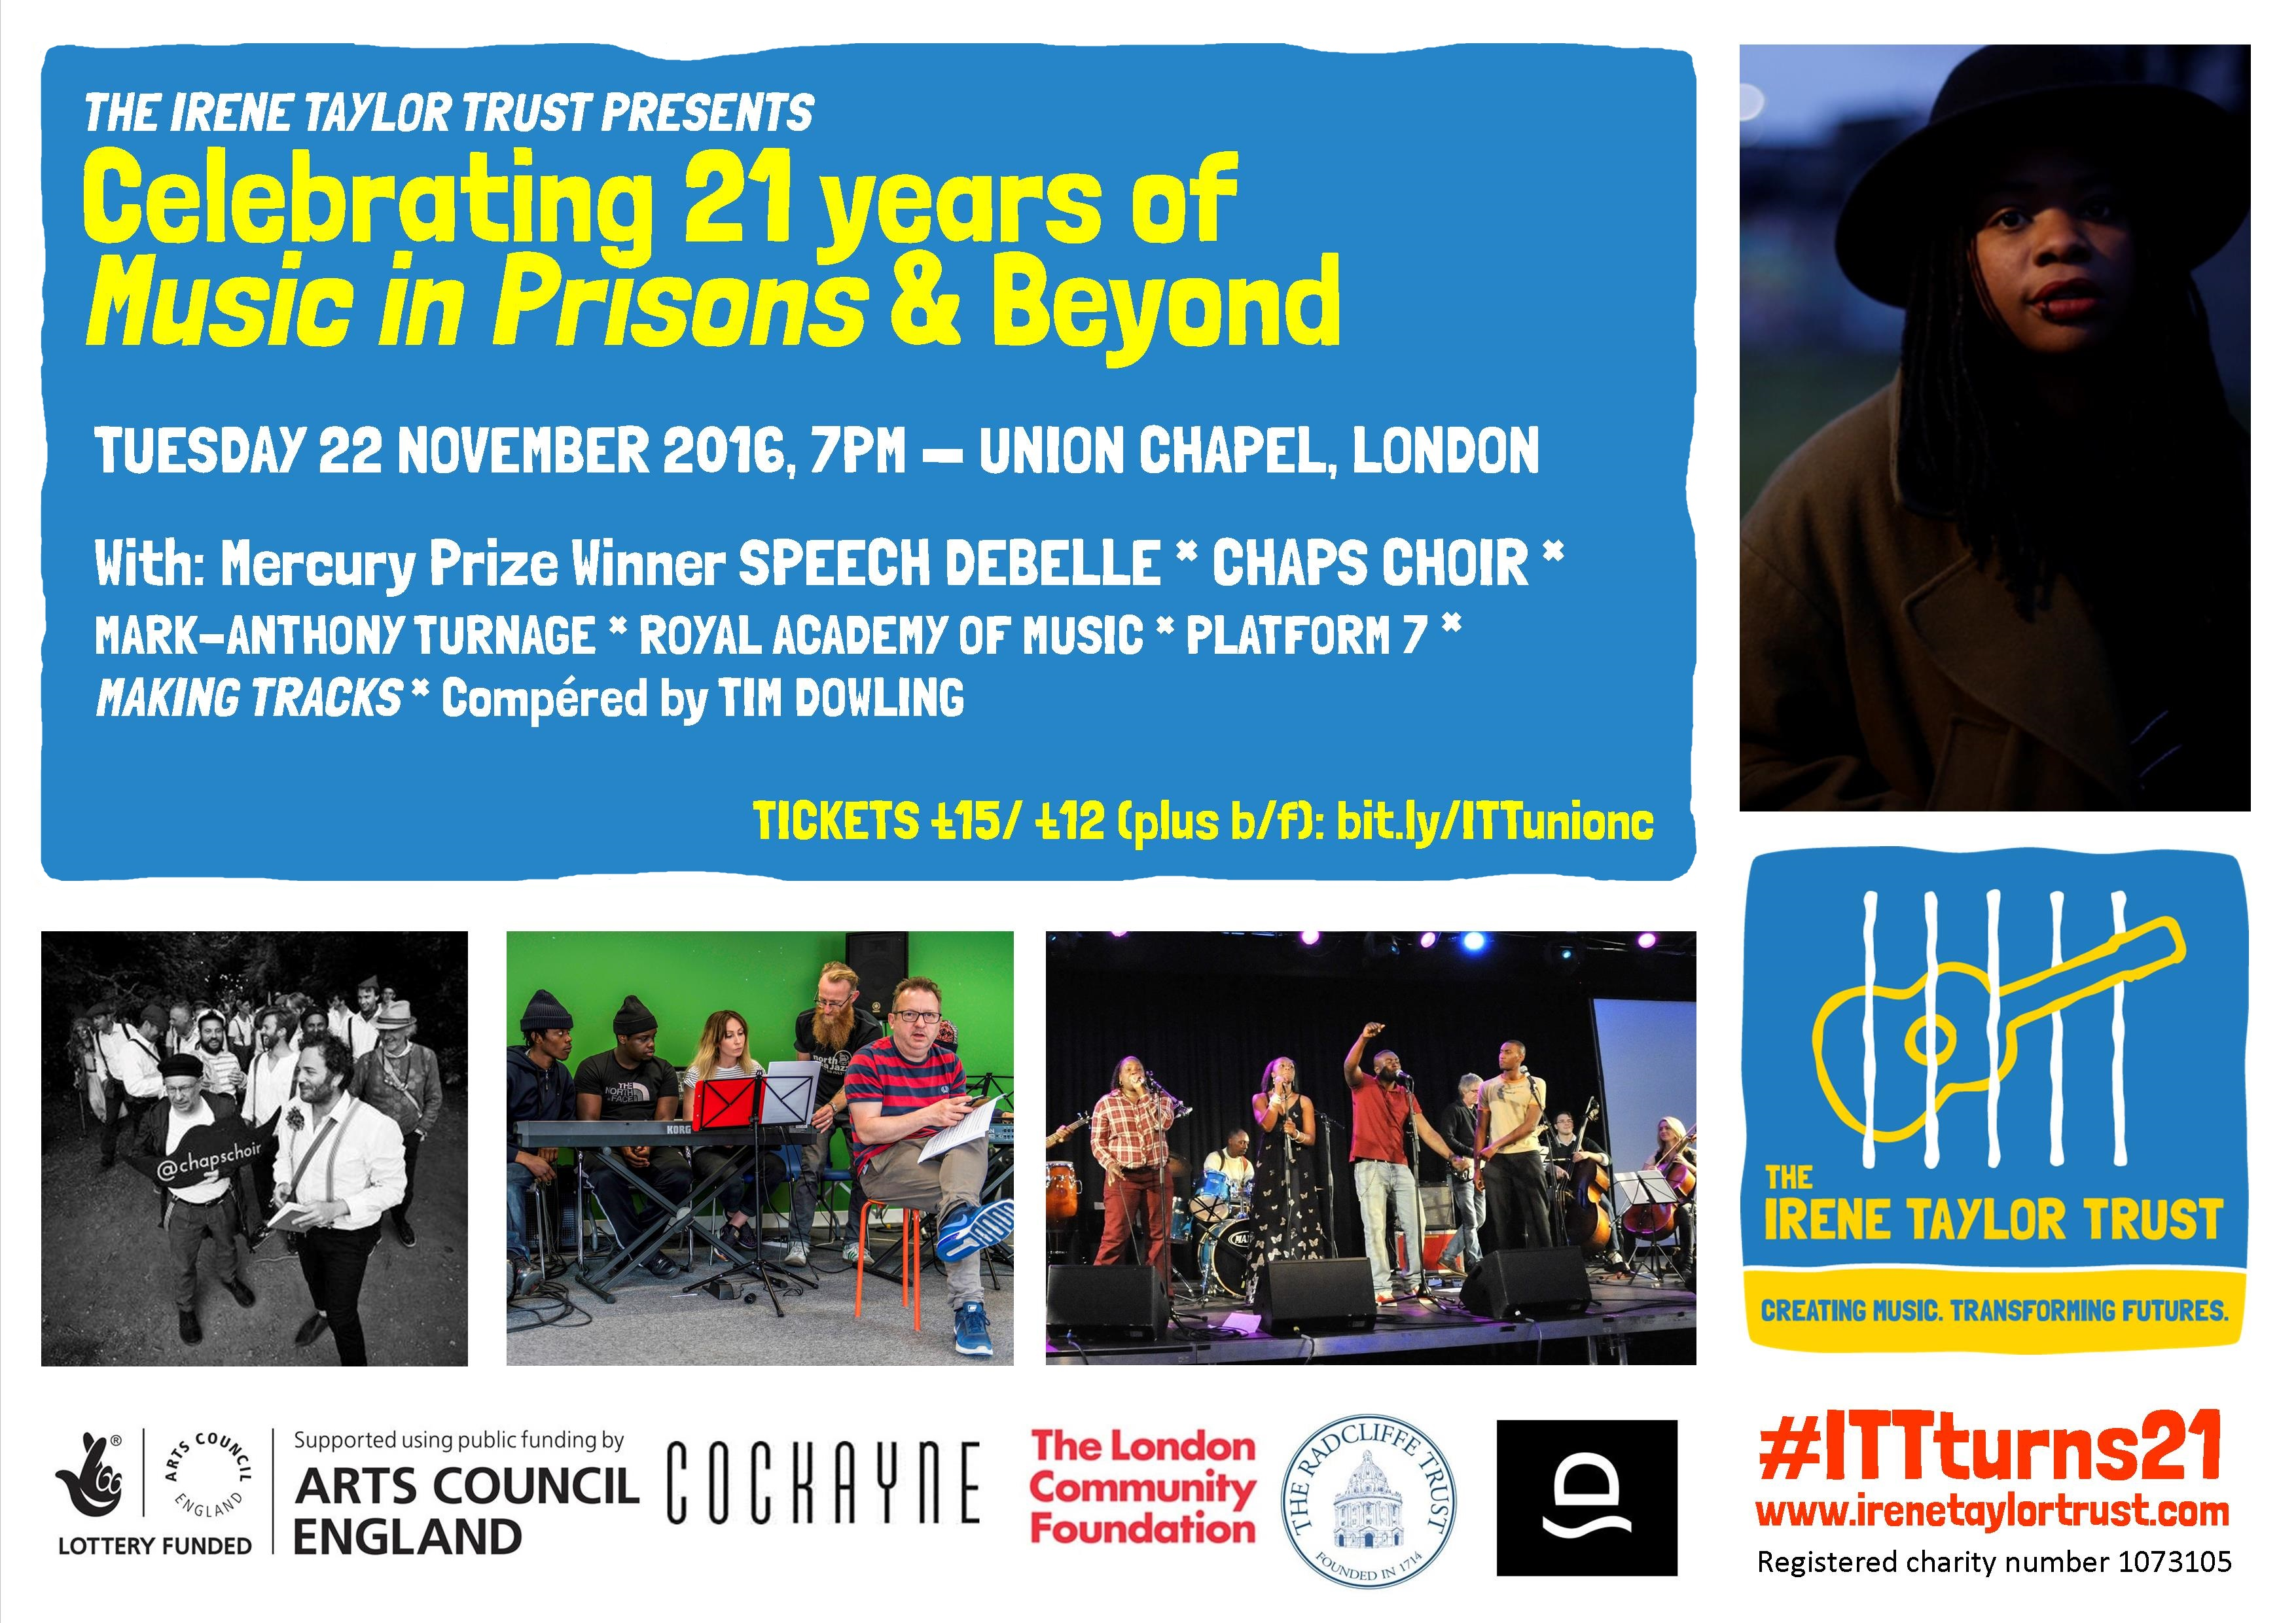 Celebrating 21 Years of Music in Prisons at the Union Chapel